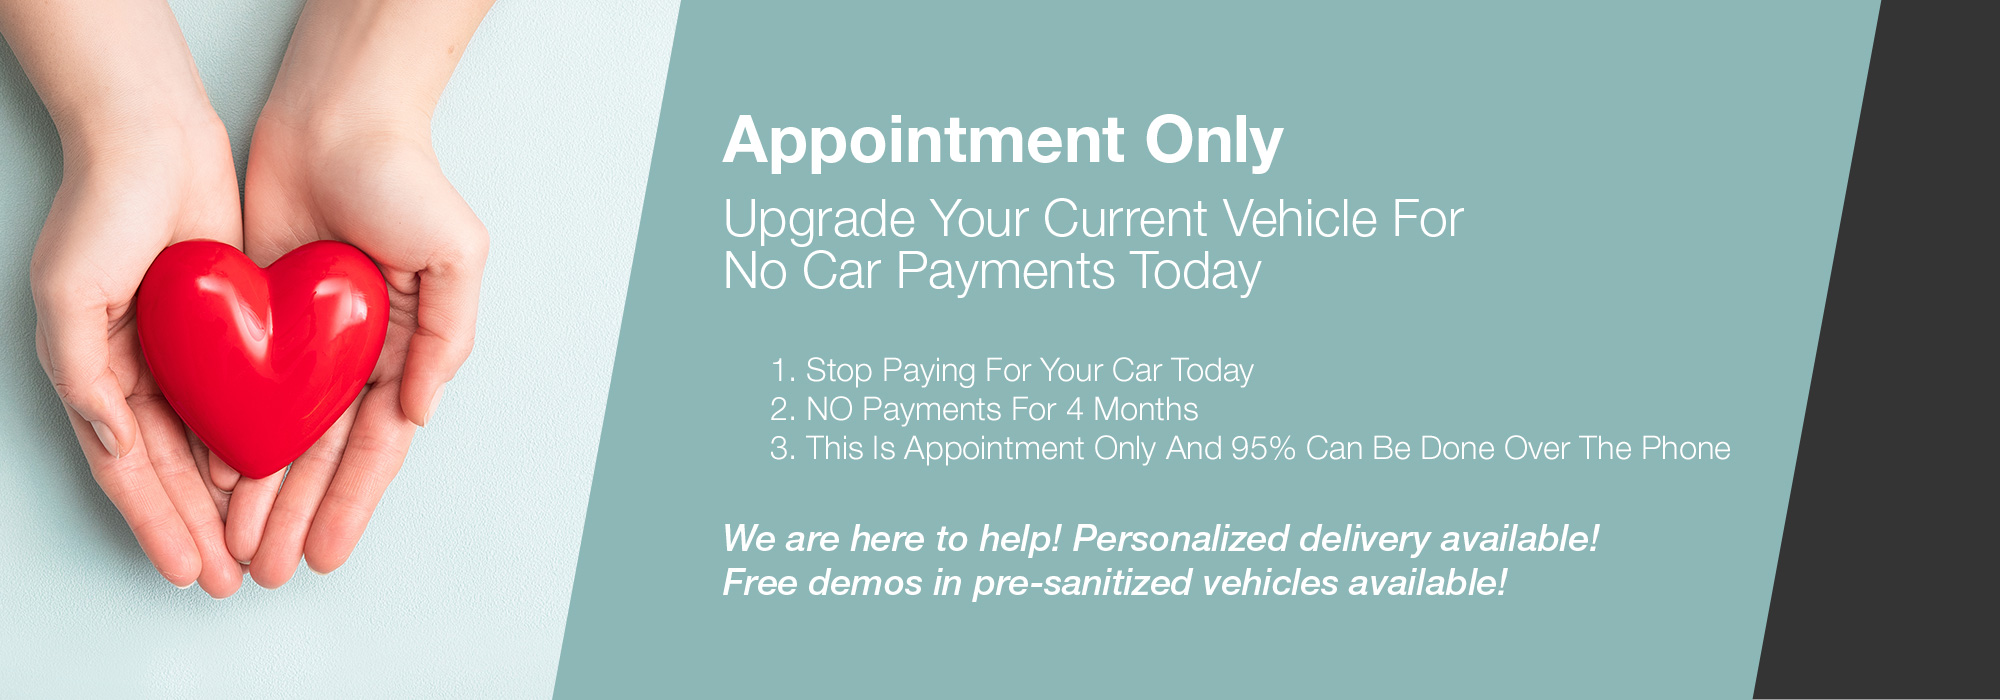 Appointment Only. Upgrade Your Current Vehicle For No Car Payments Today